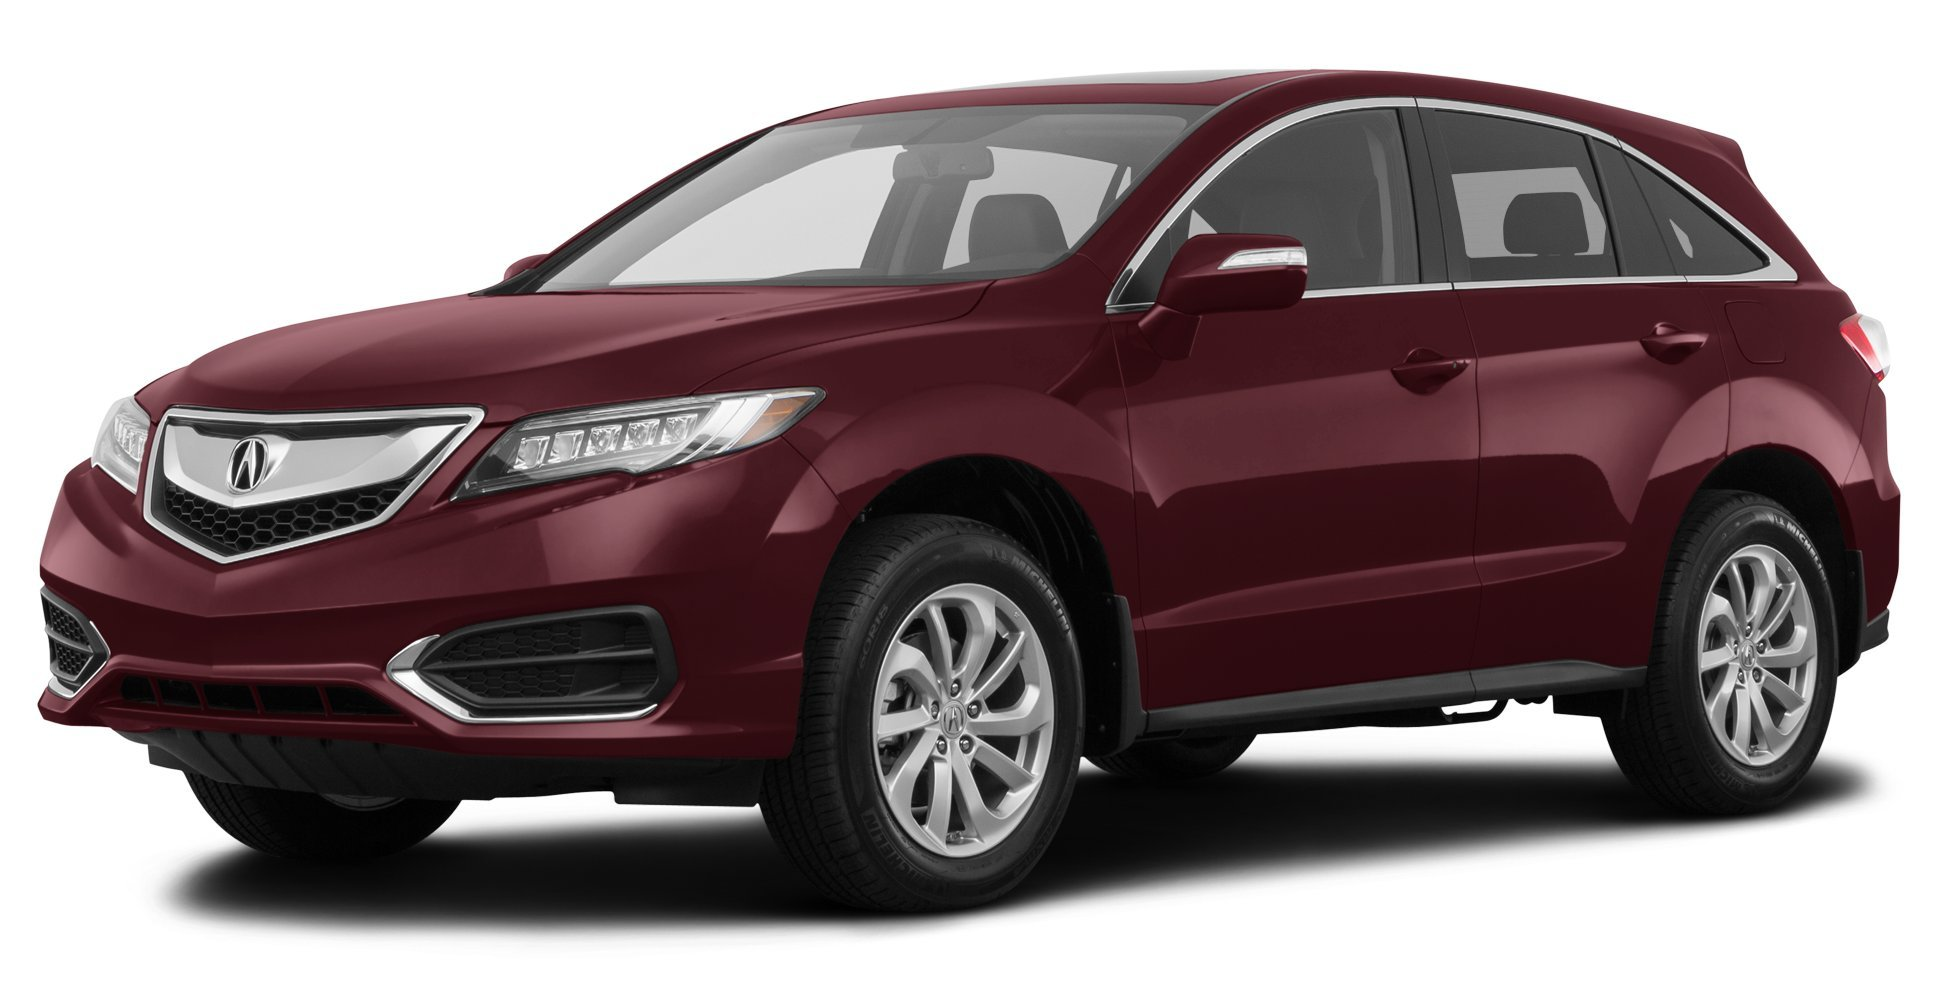 kbb acura model blue nyias debuts all news the rdx production kelley book car latest